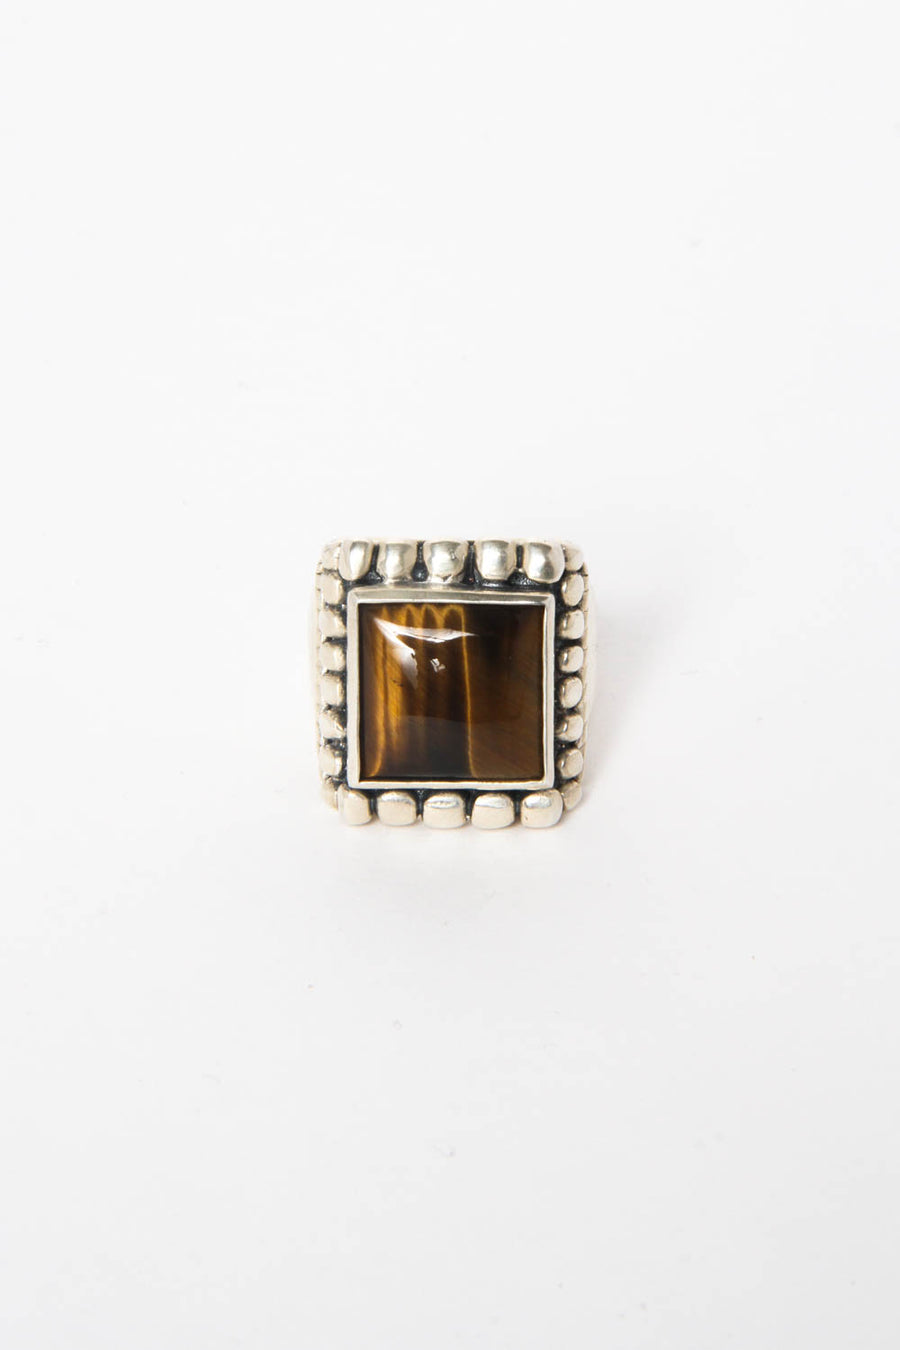 Kelly Cole Men's Tiger's Eye Marquee Ring Size 11 - Kelly Cole USA